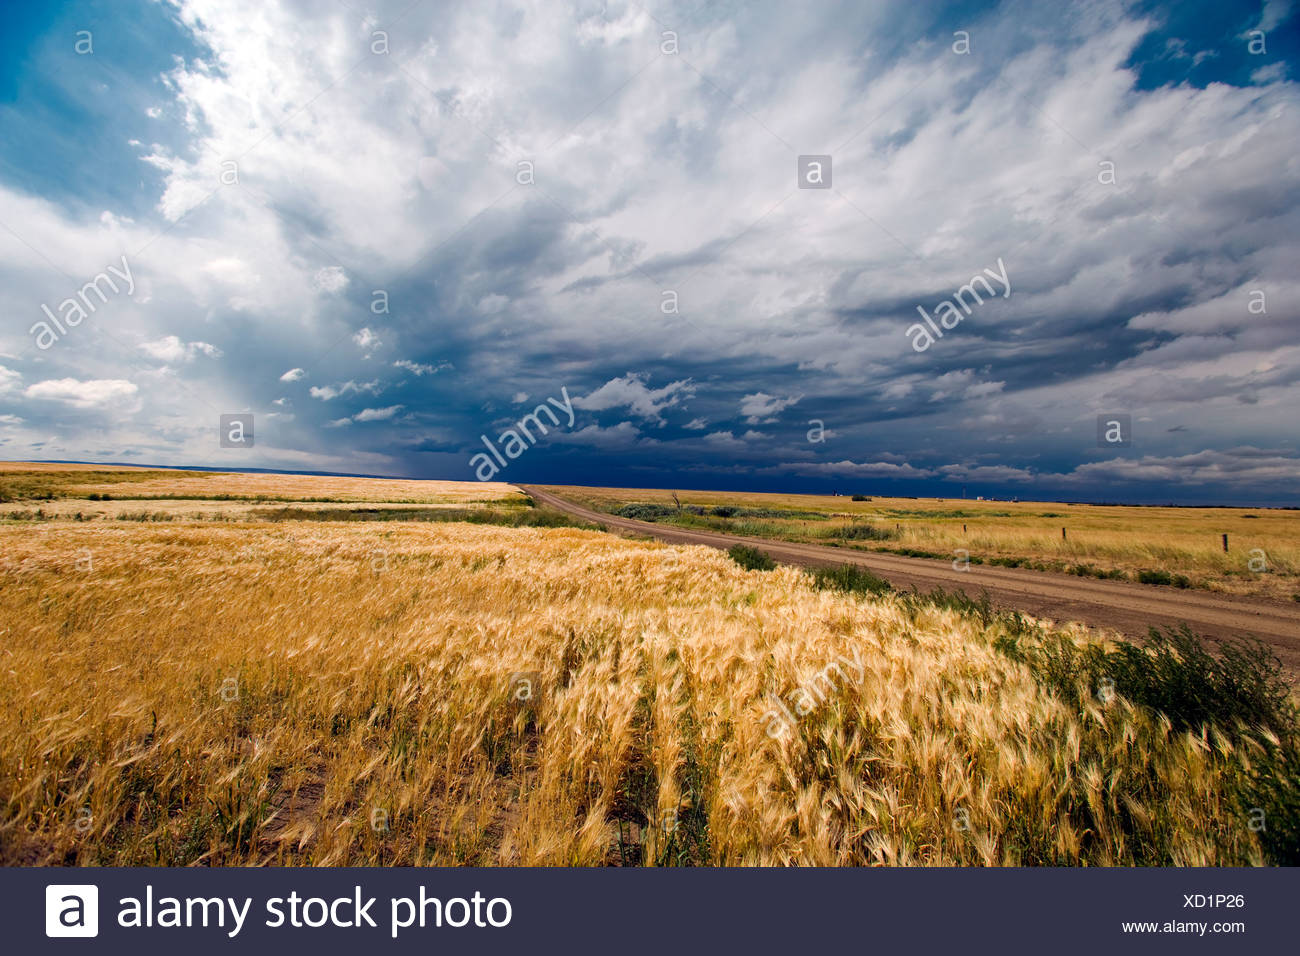 Thunder Storm, Crowfoot Ferry, Alberta, Canada, grain, weather, cloud, agriculture - Stock Image